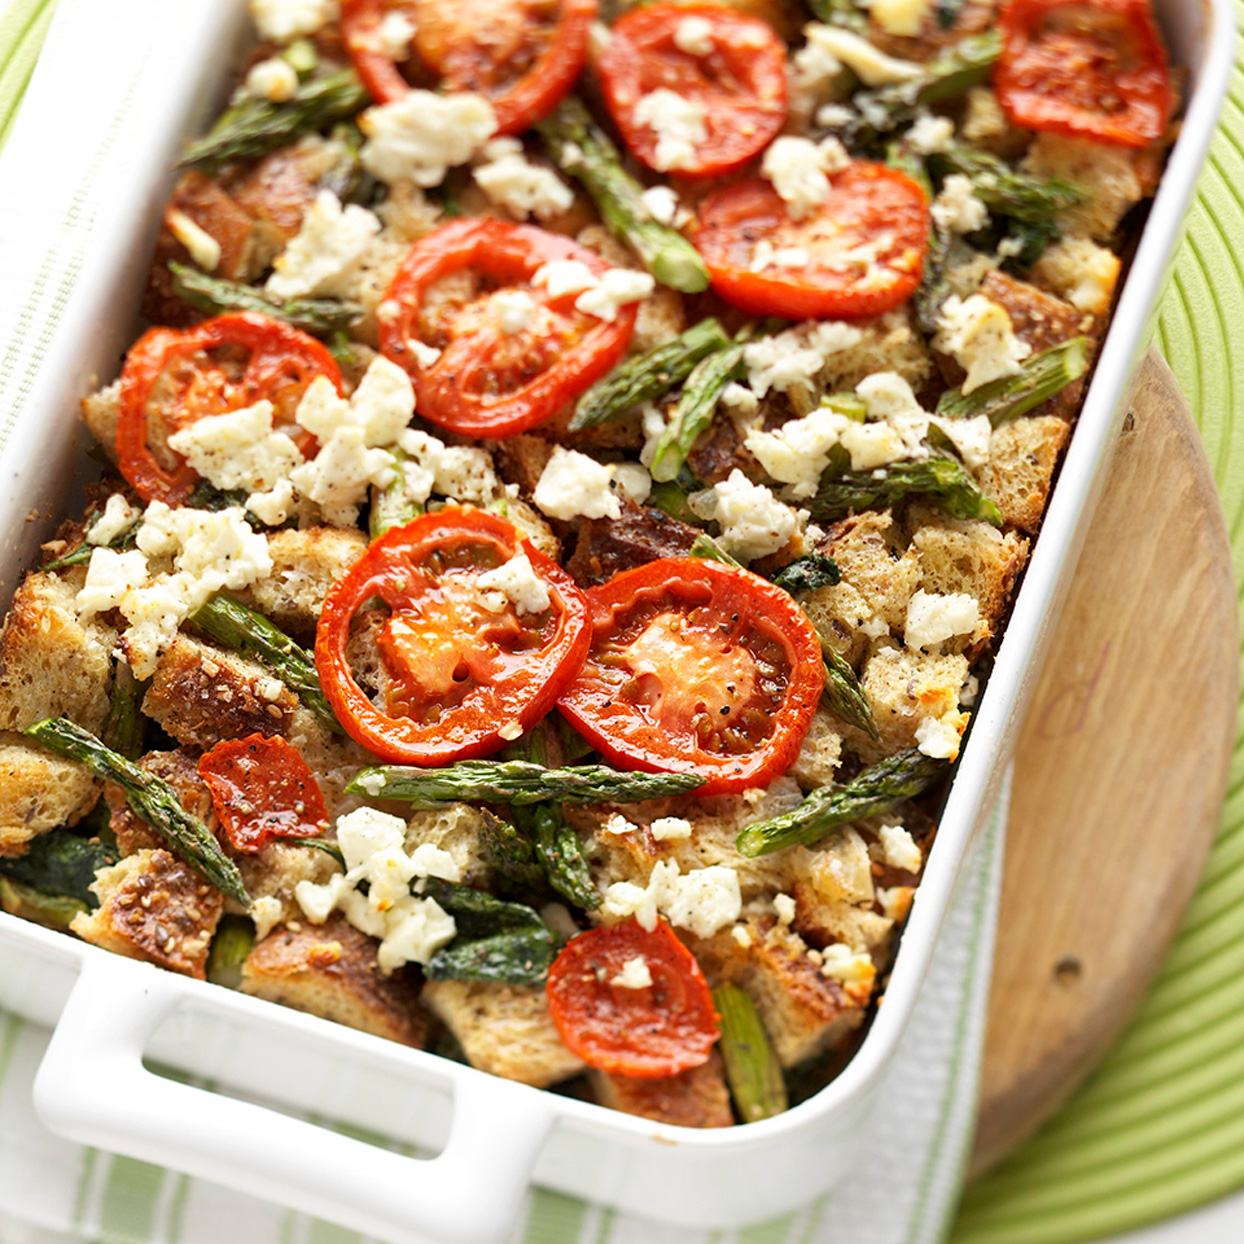 Tomato Spinach and Feta Strata in White Dish